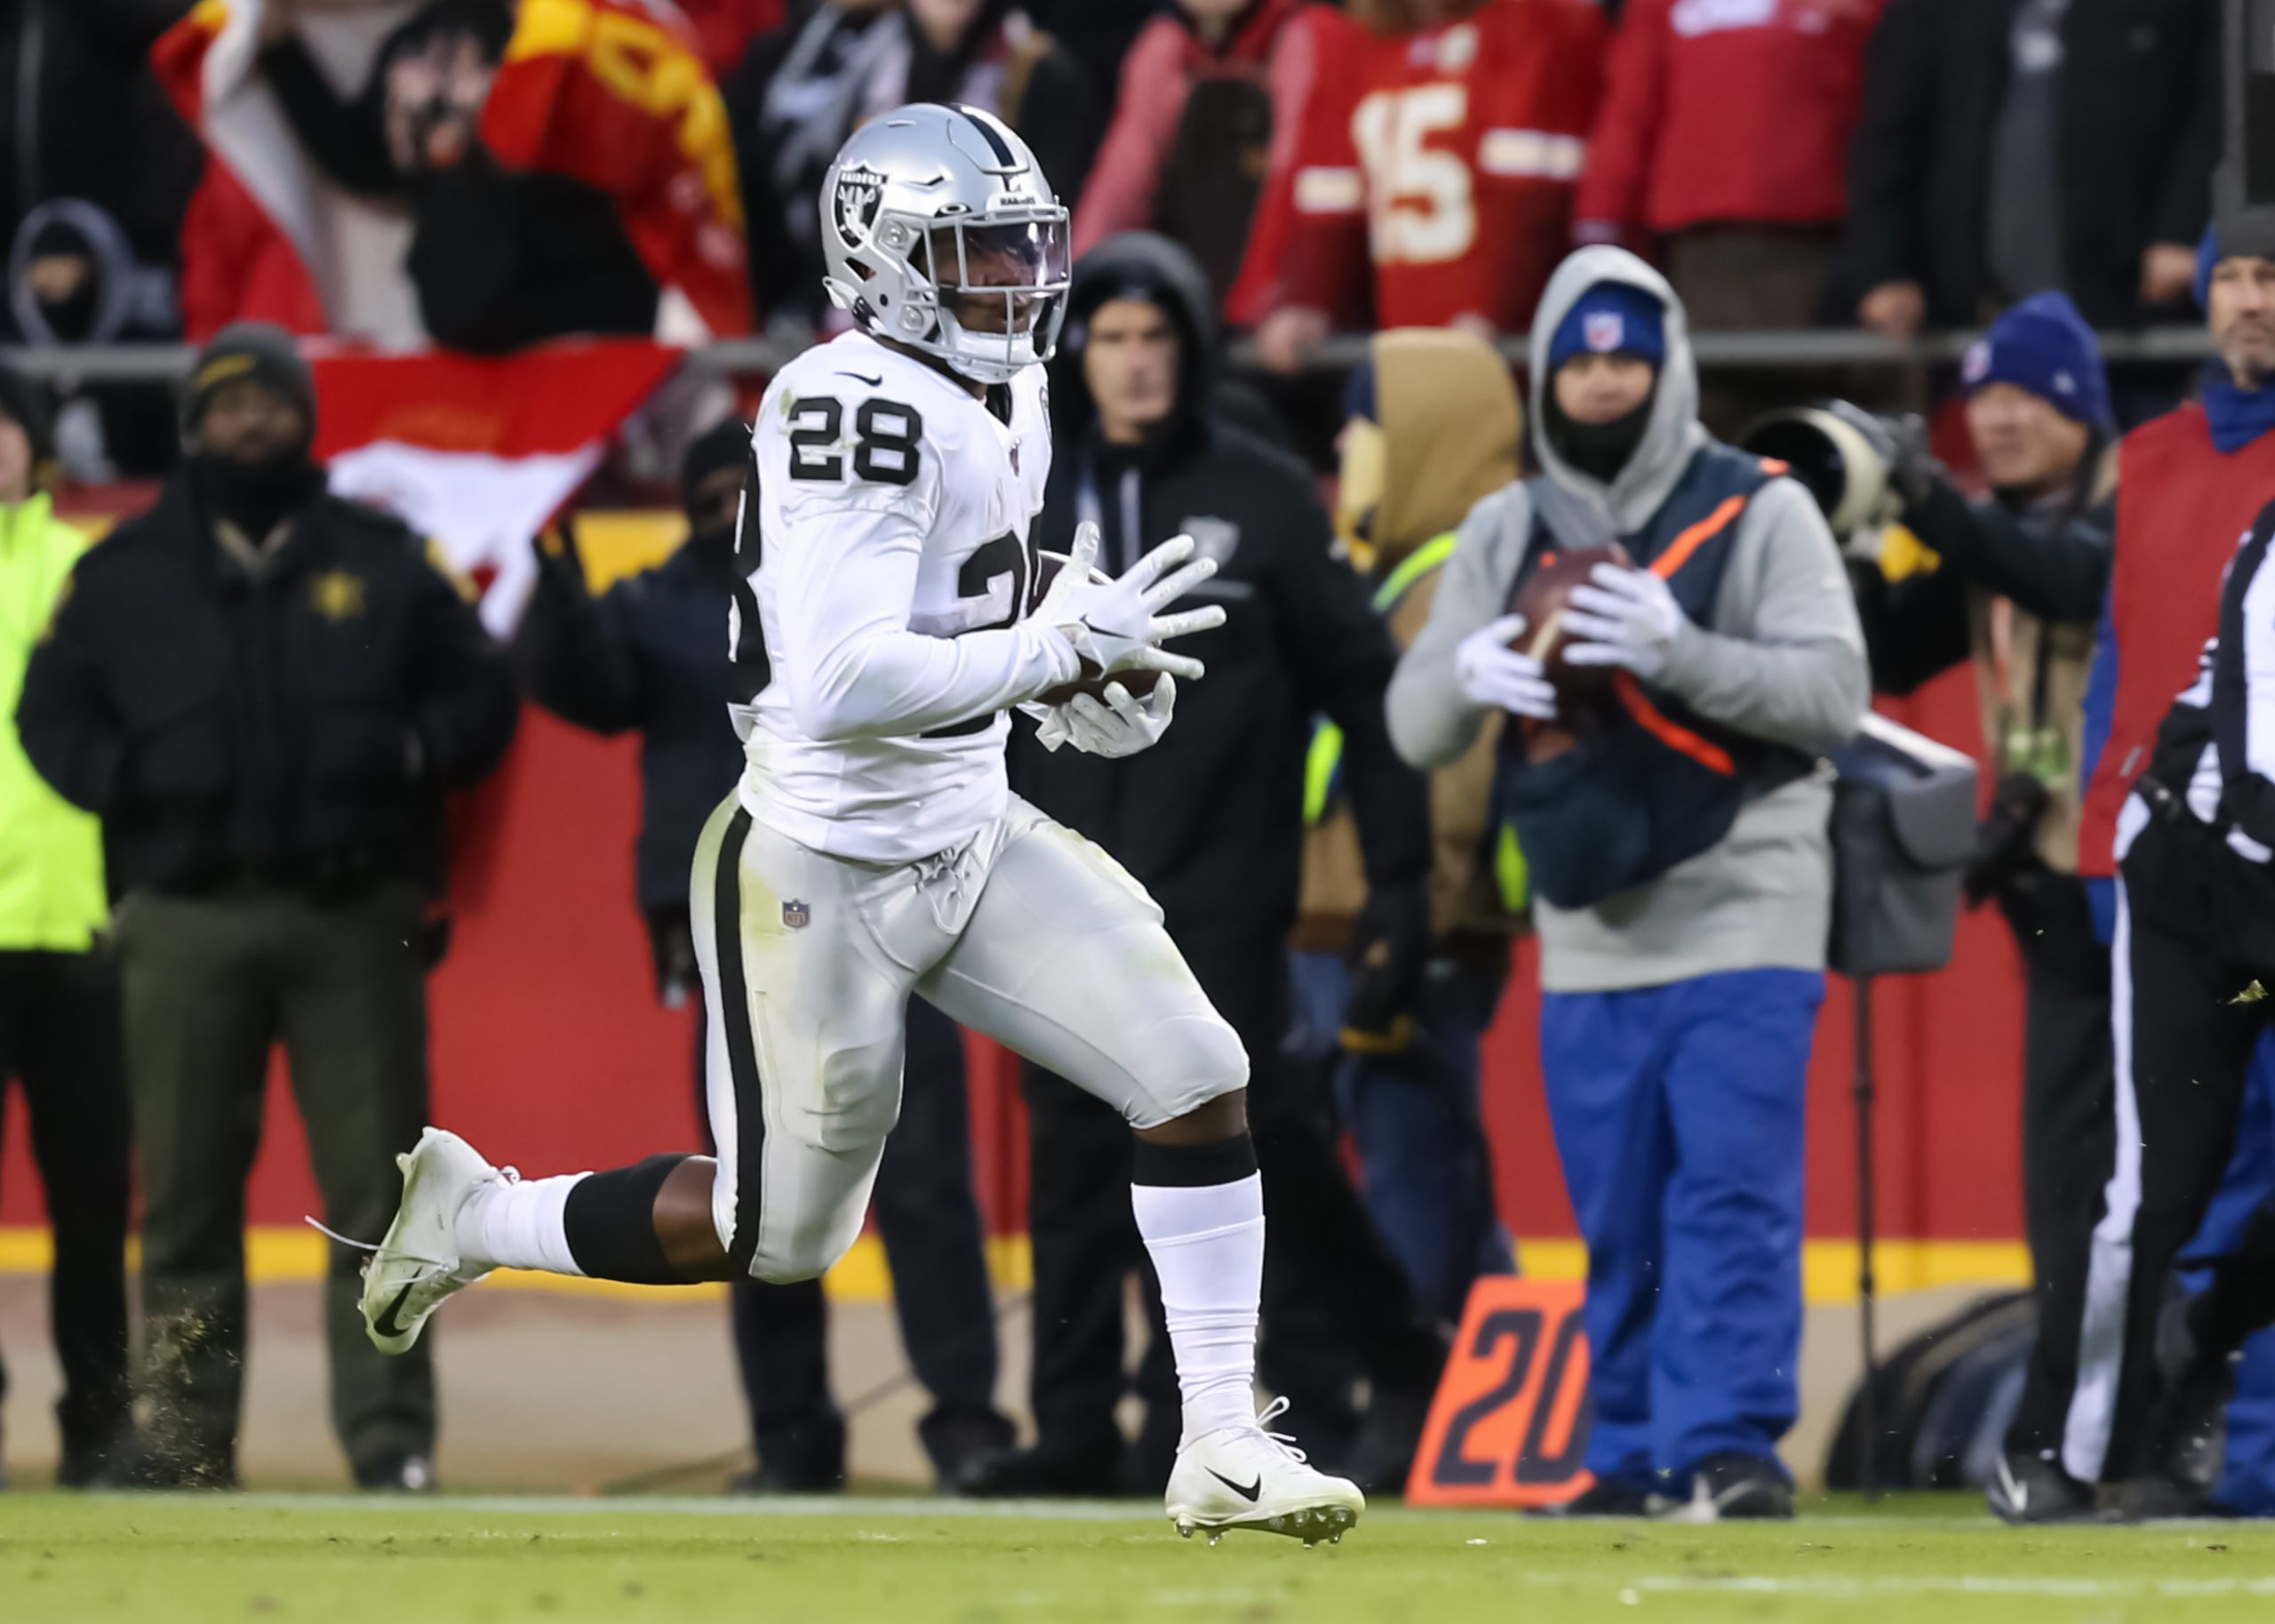 KANSAS CITY, MO - DECEMBER 01: Oakland Raiders running back Josh Jacobs 28 during a 35-yard run late in the second quarter of an AFC West game between the Oakland Raiders and Kansas City Chiefs on December 1, 2019 at Arrowhead Stadium in Kansas City, MO. Photo by Scott Winters/Icon Sportswire NFL, American Football Herren, USA DEC 01 Raiders at Chiefs PUBLICATIONxINxGERxSUIxAUTxHUNxRUSxSWExNORxDENxONLY Icon1912010356